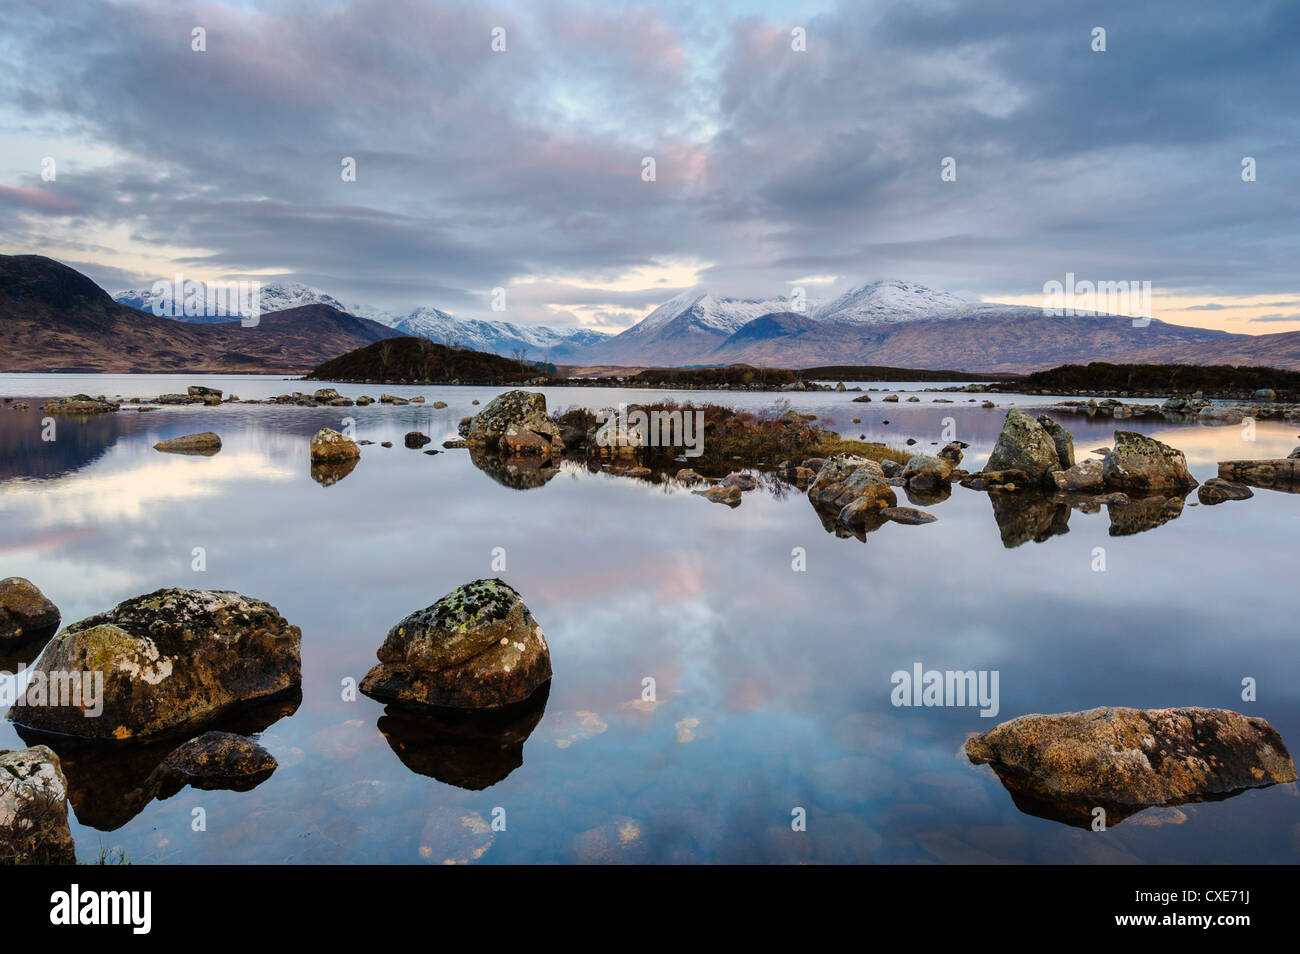 Snow covered mountains at dawn, Lochan na h Achlaise, Rannoch Moor, Argyll and Bute, Scottish Highlands, Scotland - Stock Image